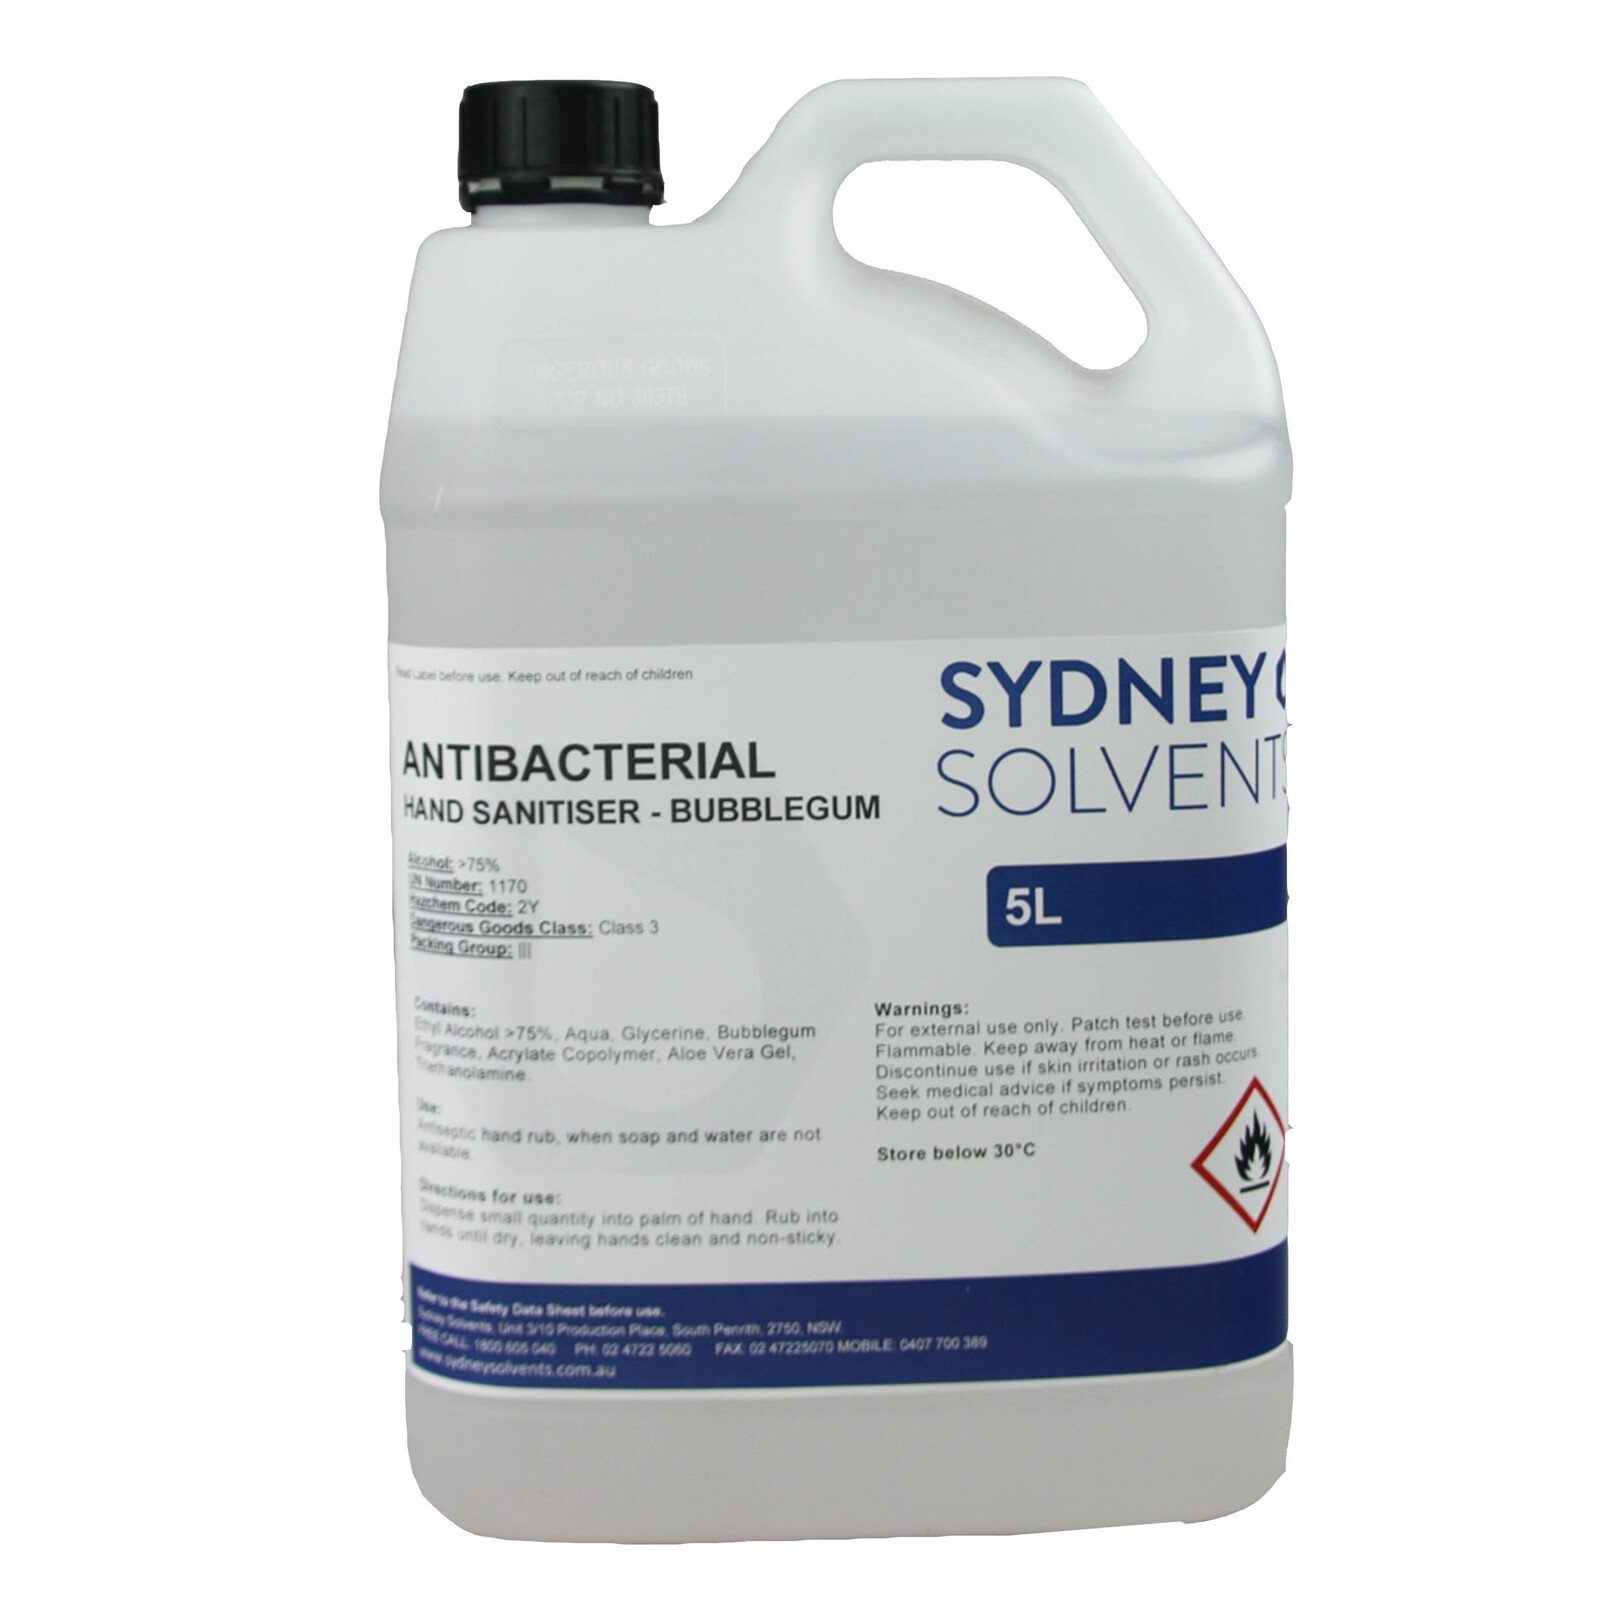 Antibacterial Instant Hand Sanitiser 5 Litre Sydney Solvents Free